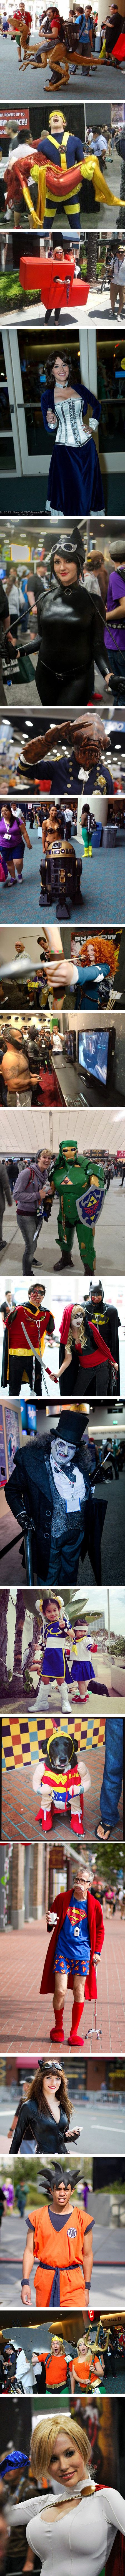 some cool and creative cosplayers from Comic Con 2013. Please tell me they noticed Meg  Turney